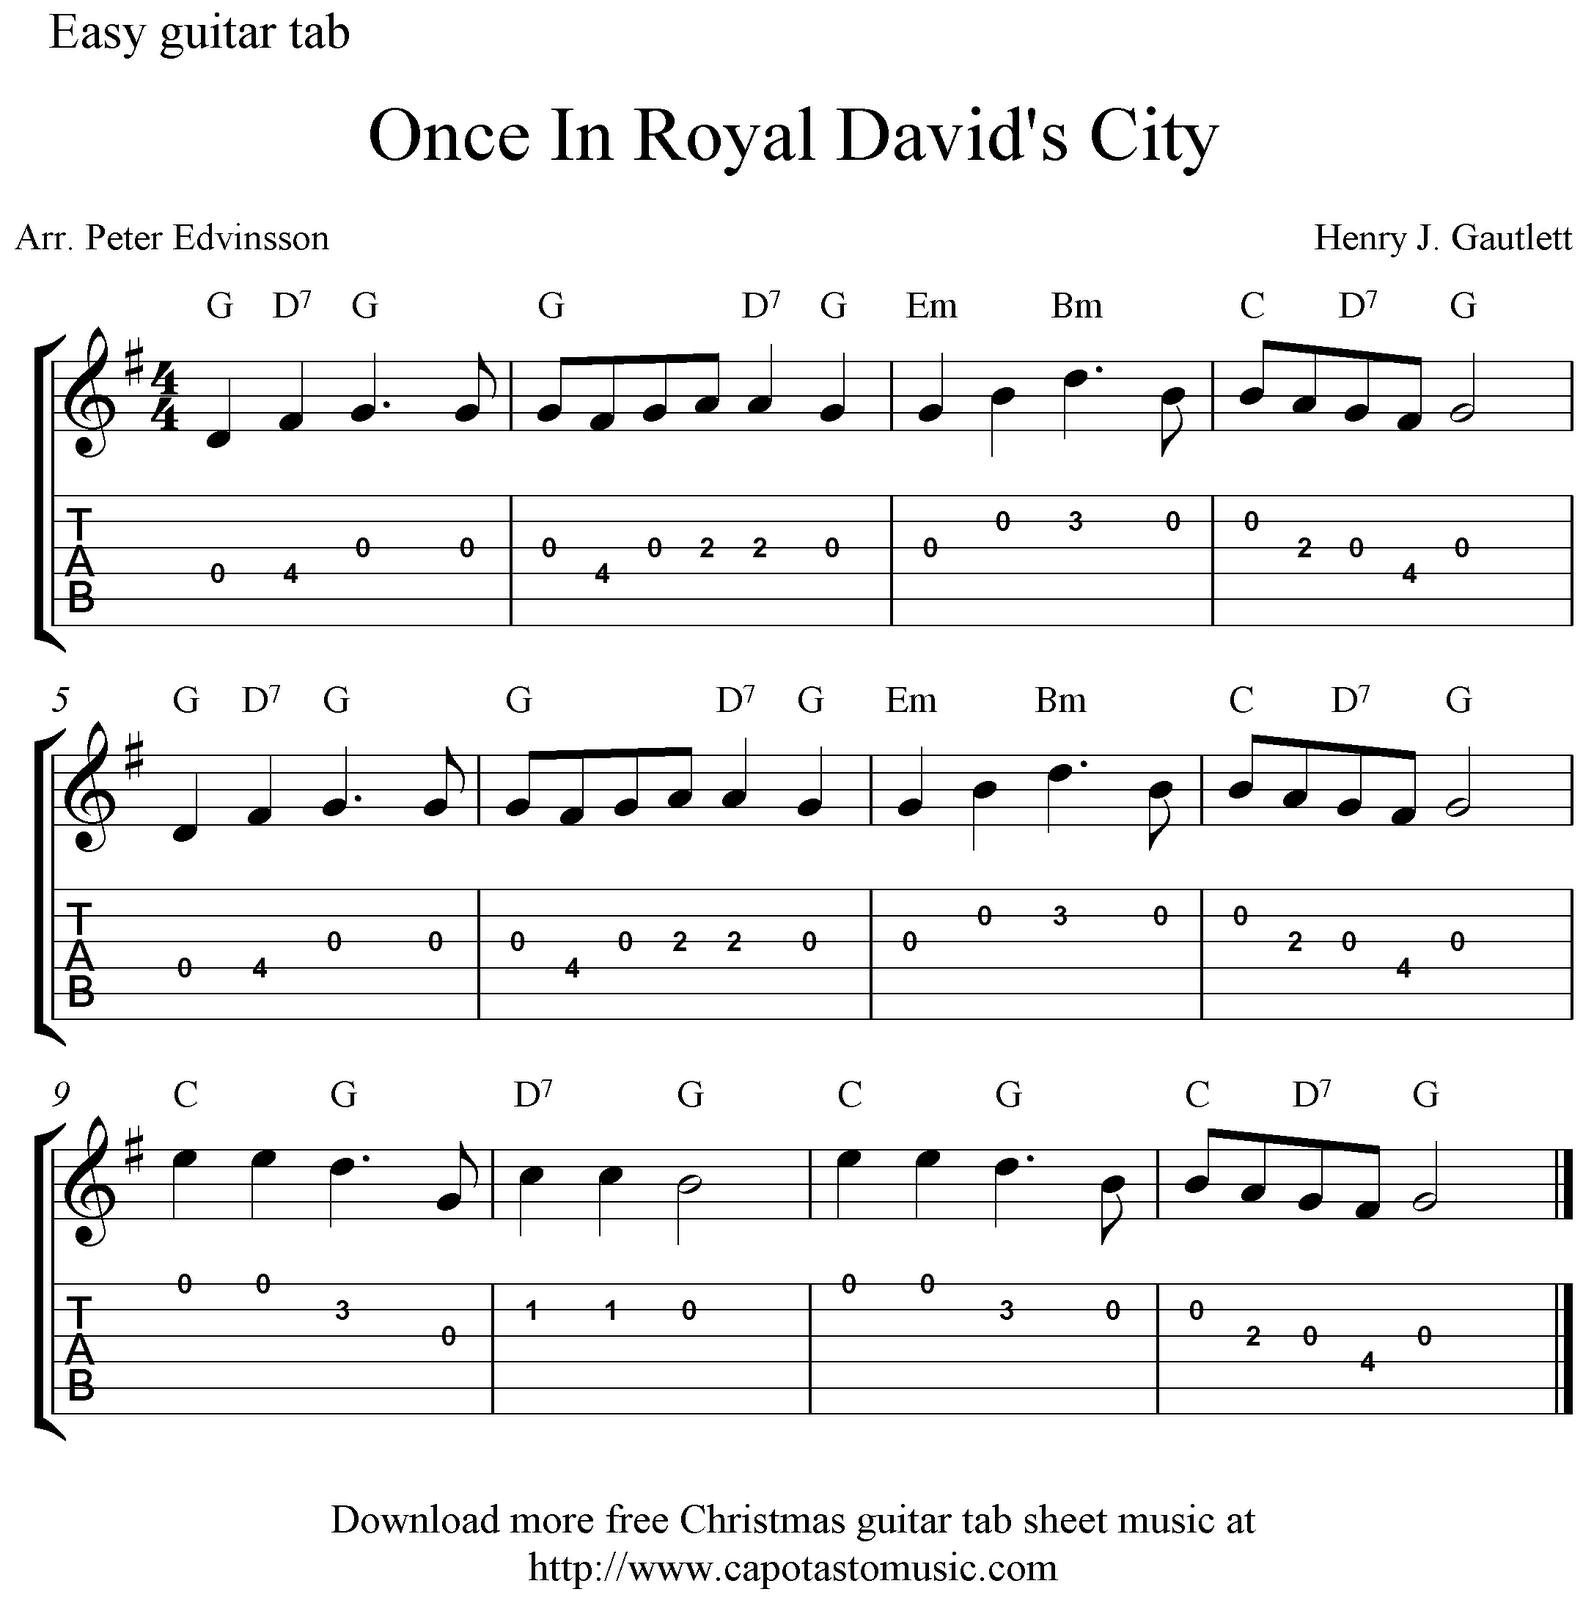 Free easy Christmas guitar tab sheet music, Once In Royal Davidu0026#39;s City